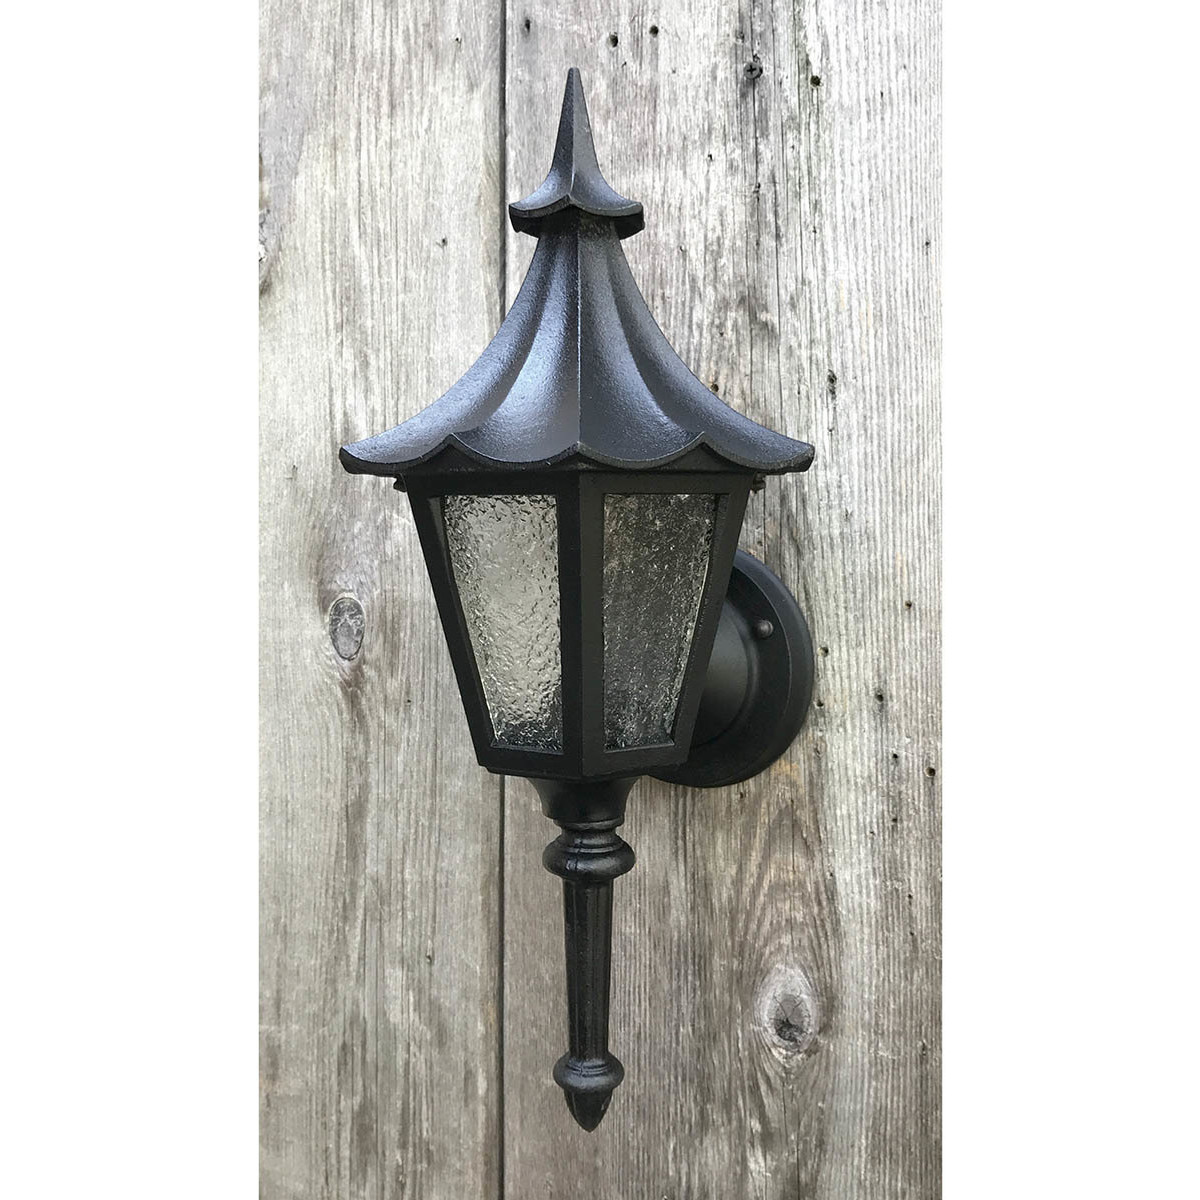 L17194 - Vintage Exterior Wall Sconce